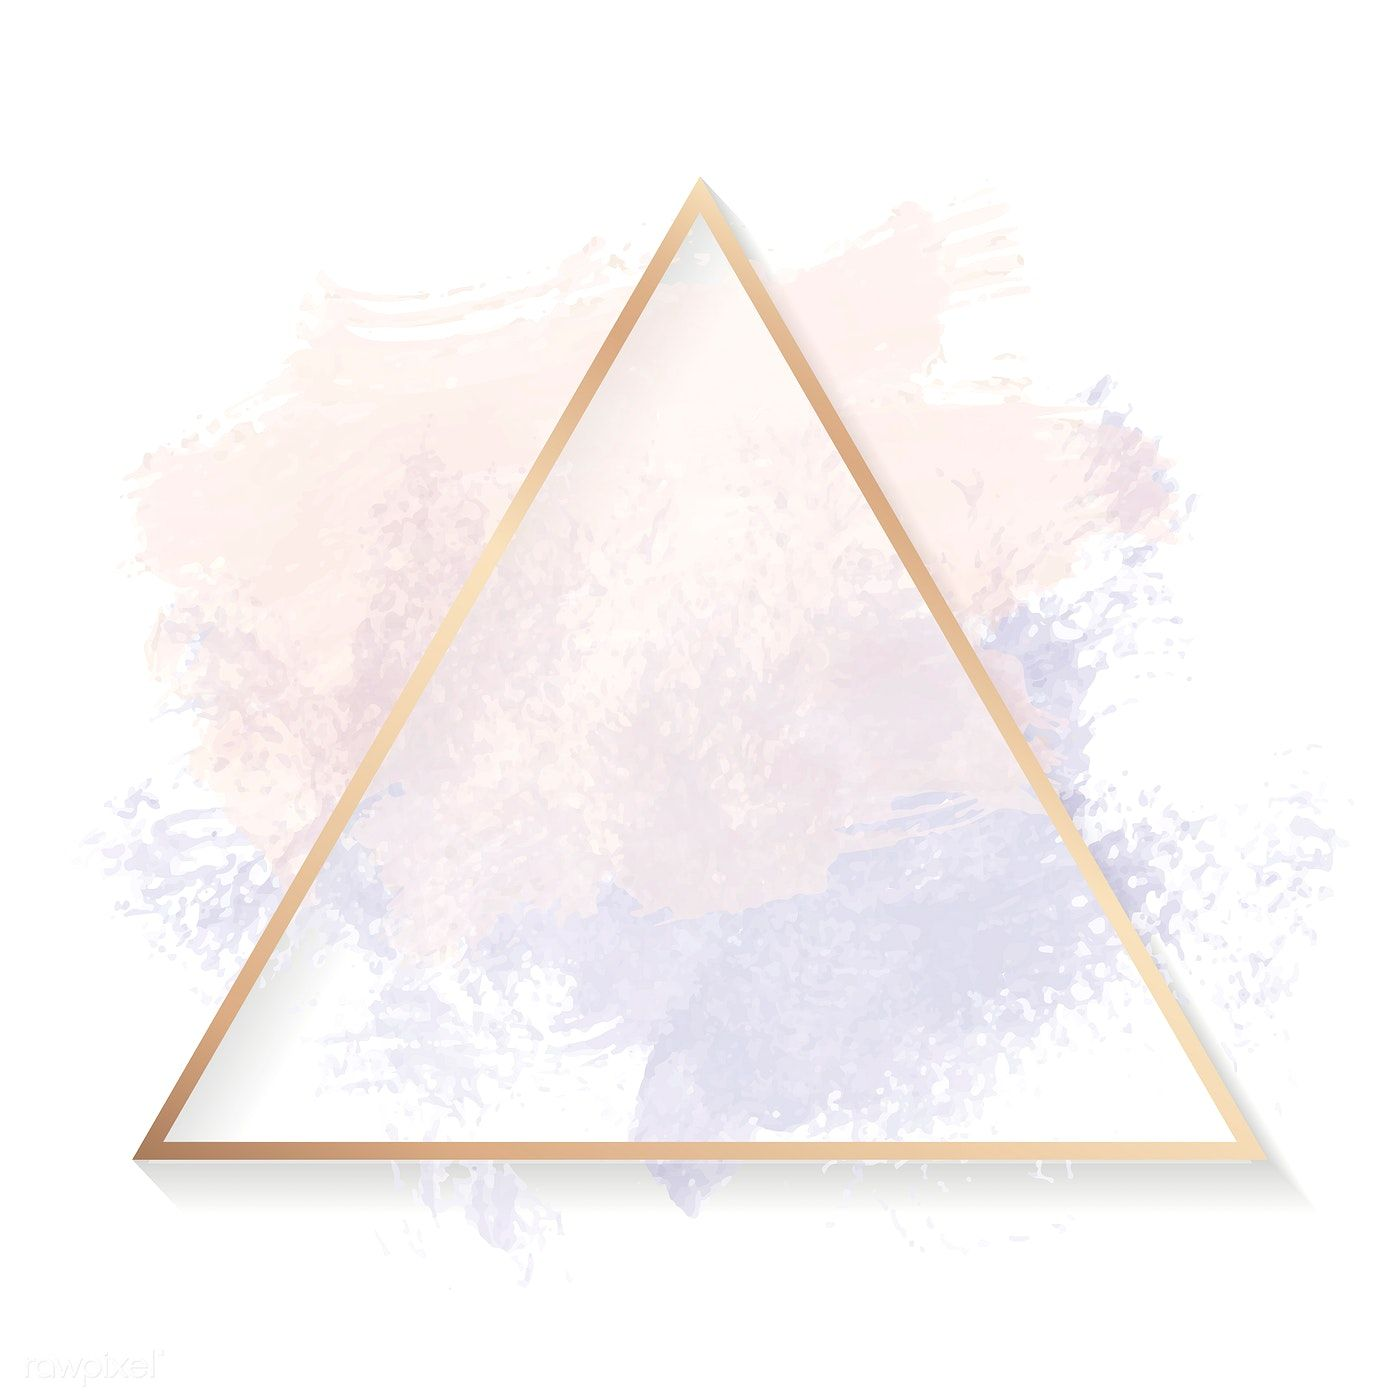 Gold Triangle Frame On A Pastel Pink And Purple Background Vector Free Image By Rawpixe Pink And Purple Background Gold Circle Frames Gold Triangle Wallpaper